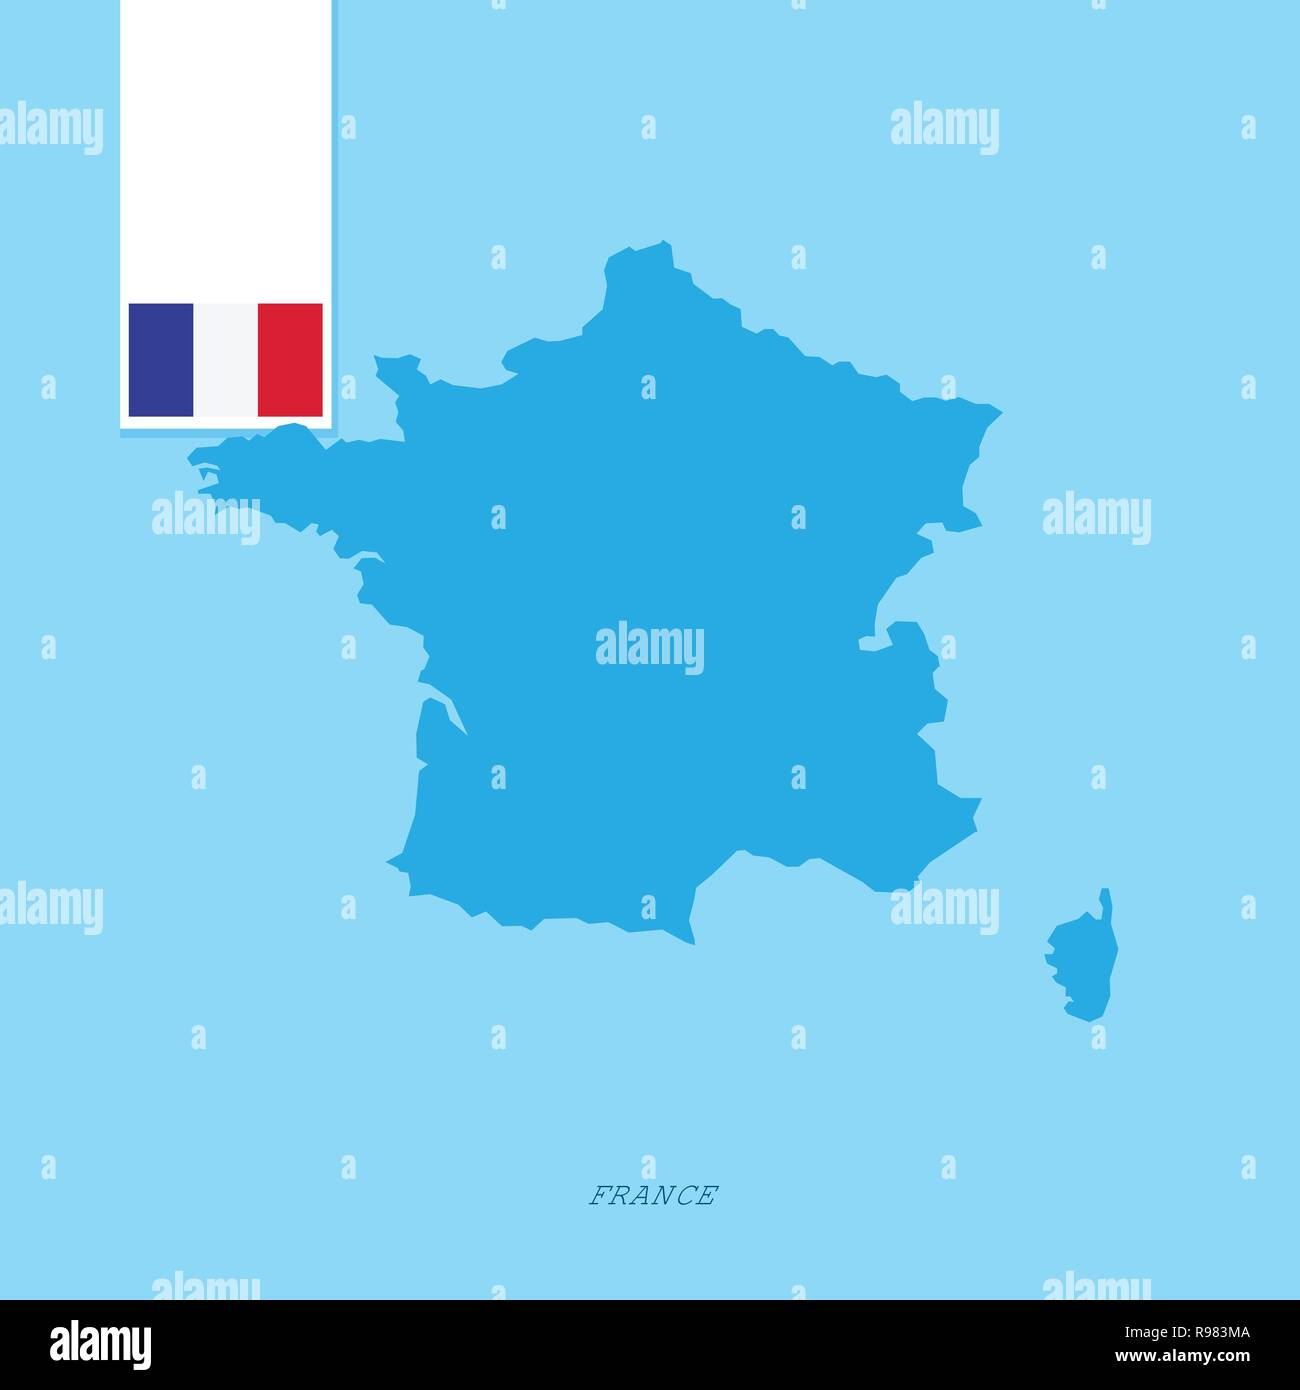 Country Map Of France.France Country Map Stock Photos France Country Map Stock Images